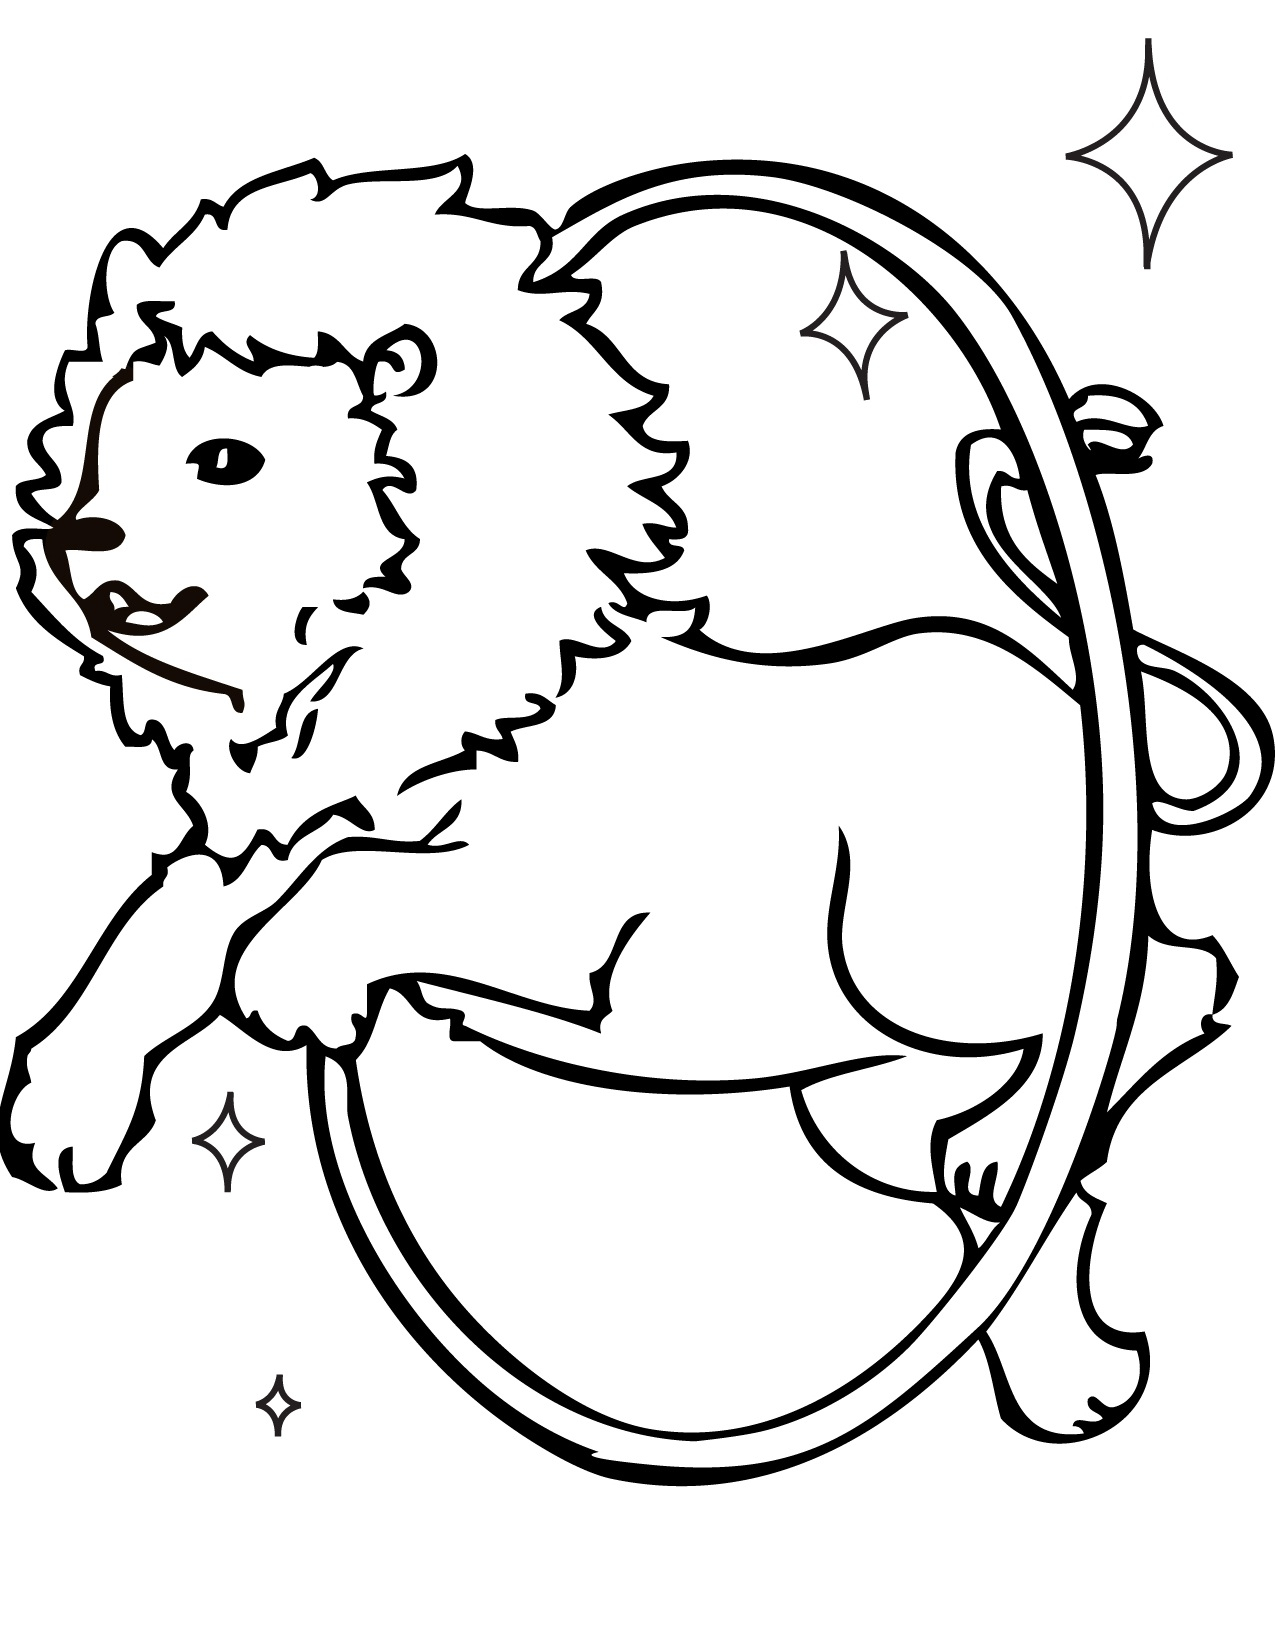 1275x1650 Circus Animal Coloring Pages Circus Lion Coloring Pages For Kids